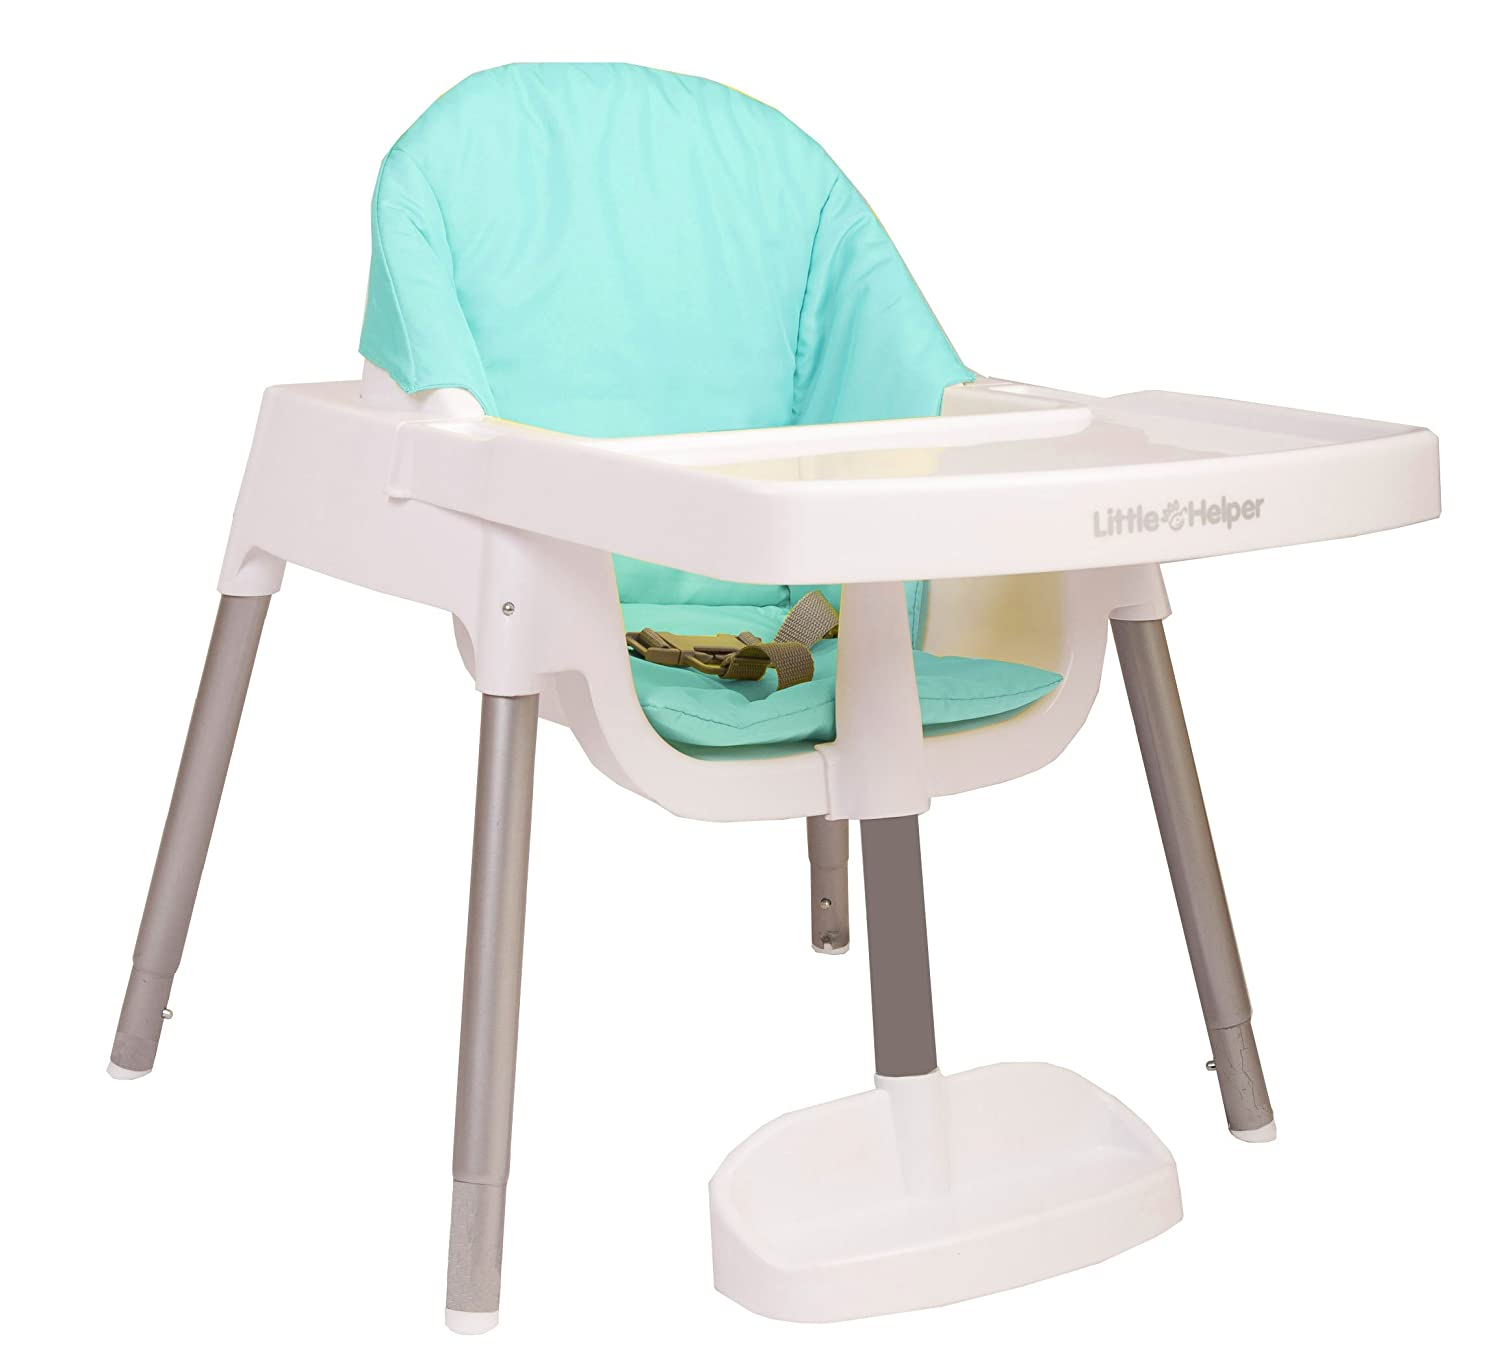 Cheap Baby High Chair Little Helper Baby Highchair Converts To Low Chair In